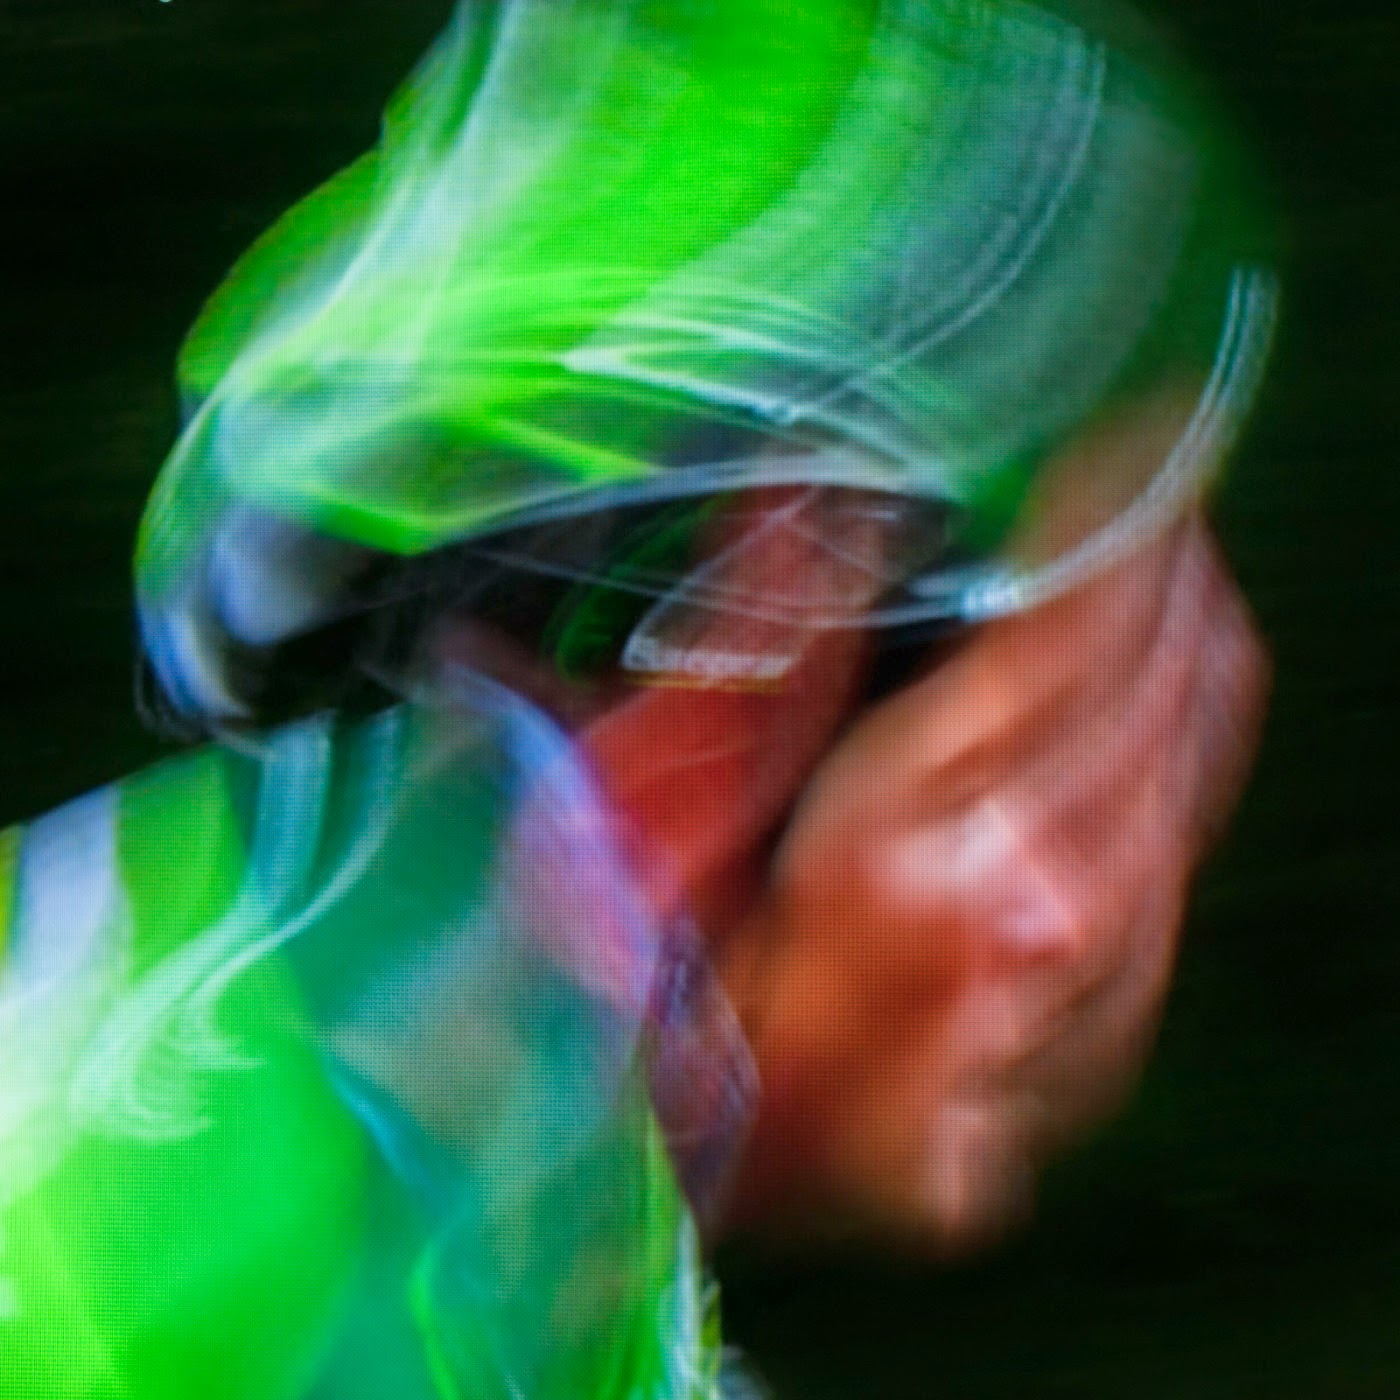 le tour de france, motion blur, blur, abstract, abstraction, tim macauley, photographic art, you won't see this at MoMA, appropriation, found imagery, le tour 2014, tv footage, portrait, timothy Macauley, the light monkey collective, grand cycling tour, team Europcar, thomas voeckler